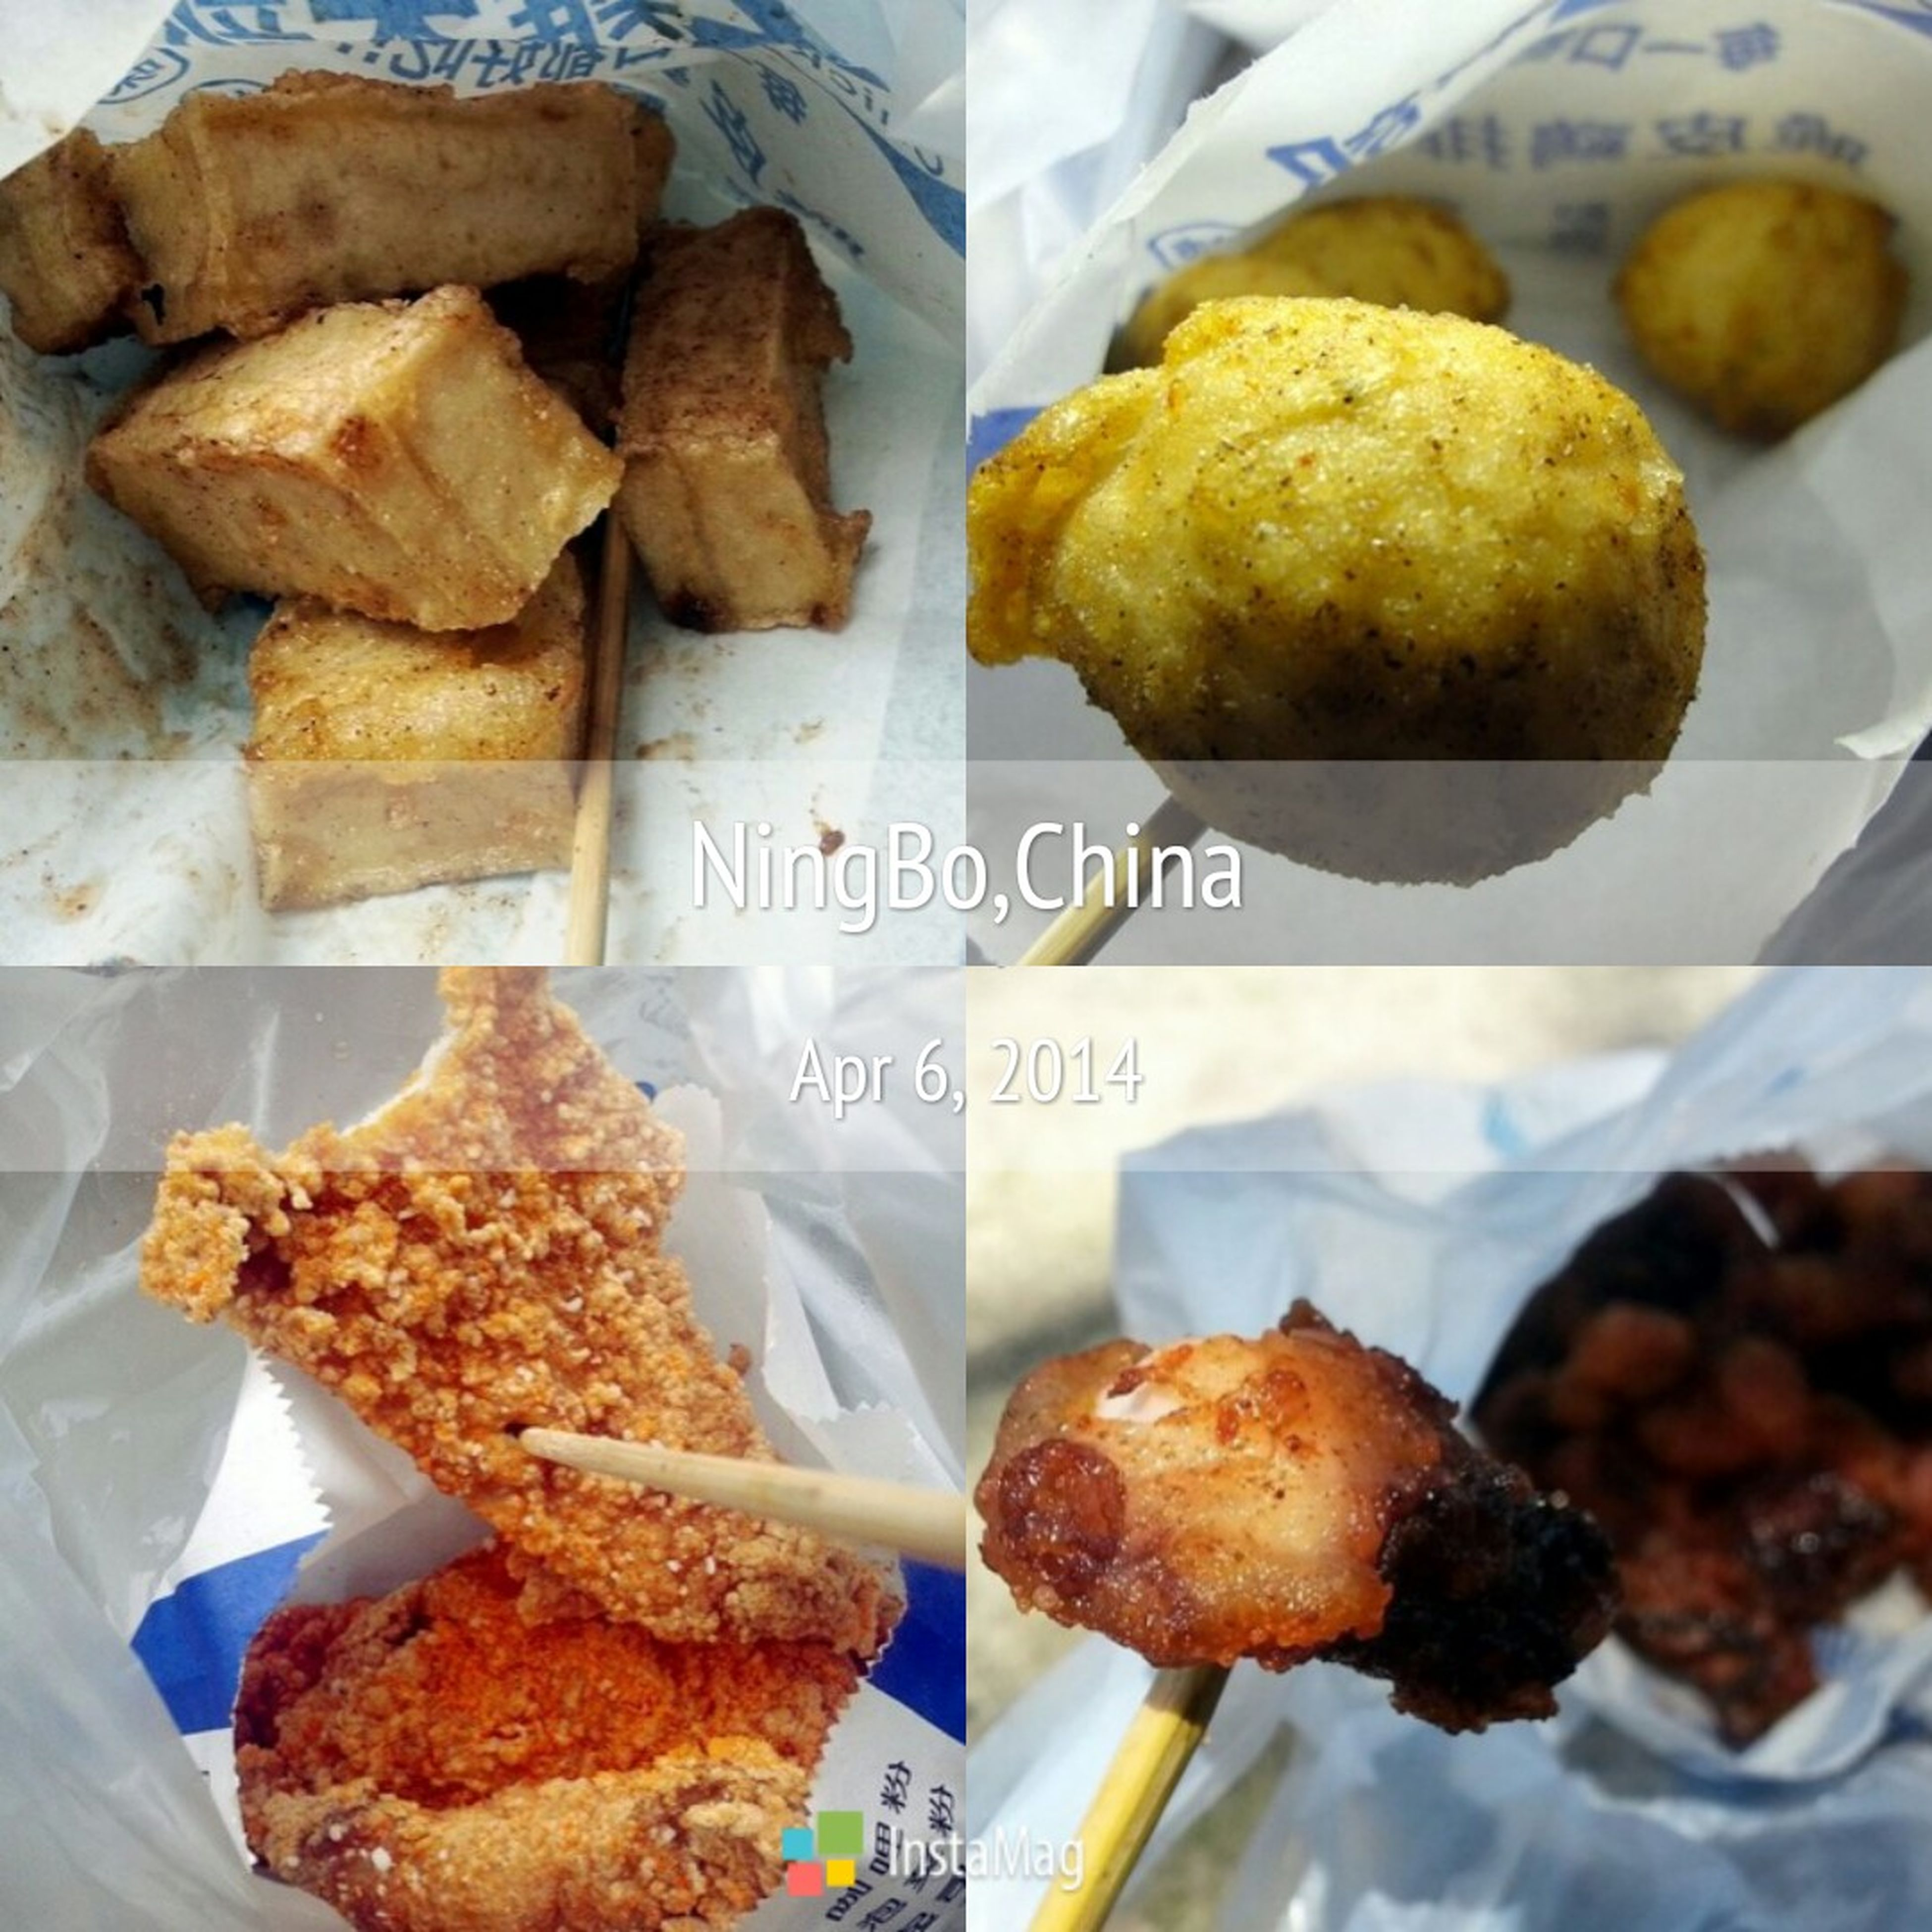 food and drink, food, freshness, indoors, ready-to-eat, still life, unhealthy eating, plate, indulgence, meal, serving size, bread, close-up, meat, fried, high angle view, snack, sweet food, temptation